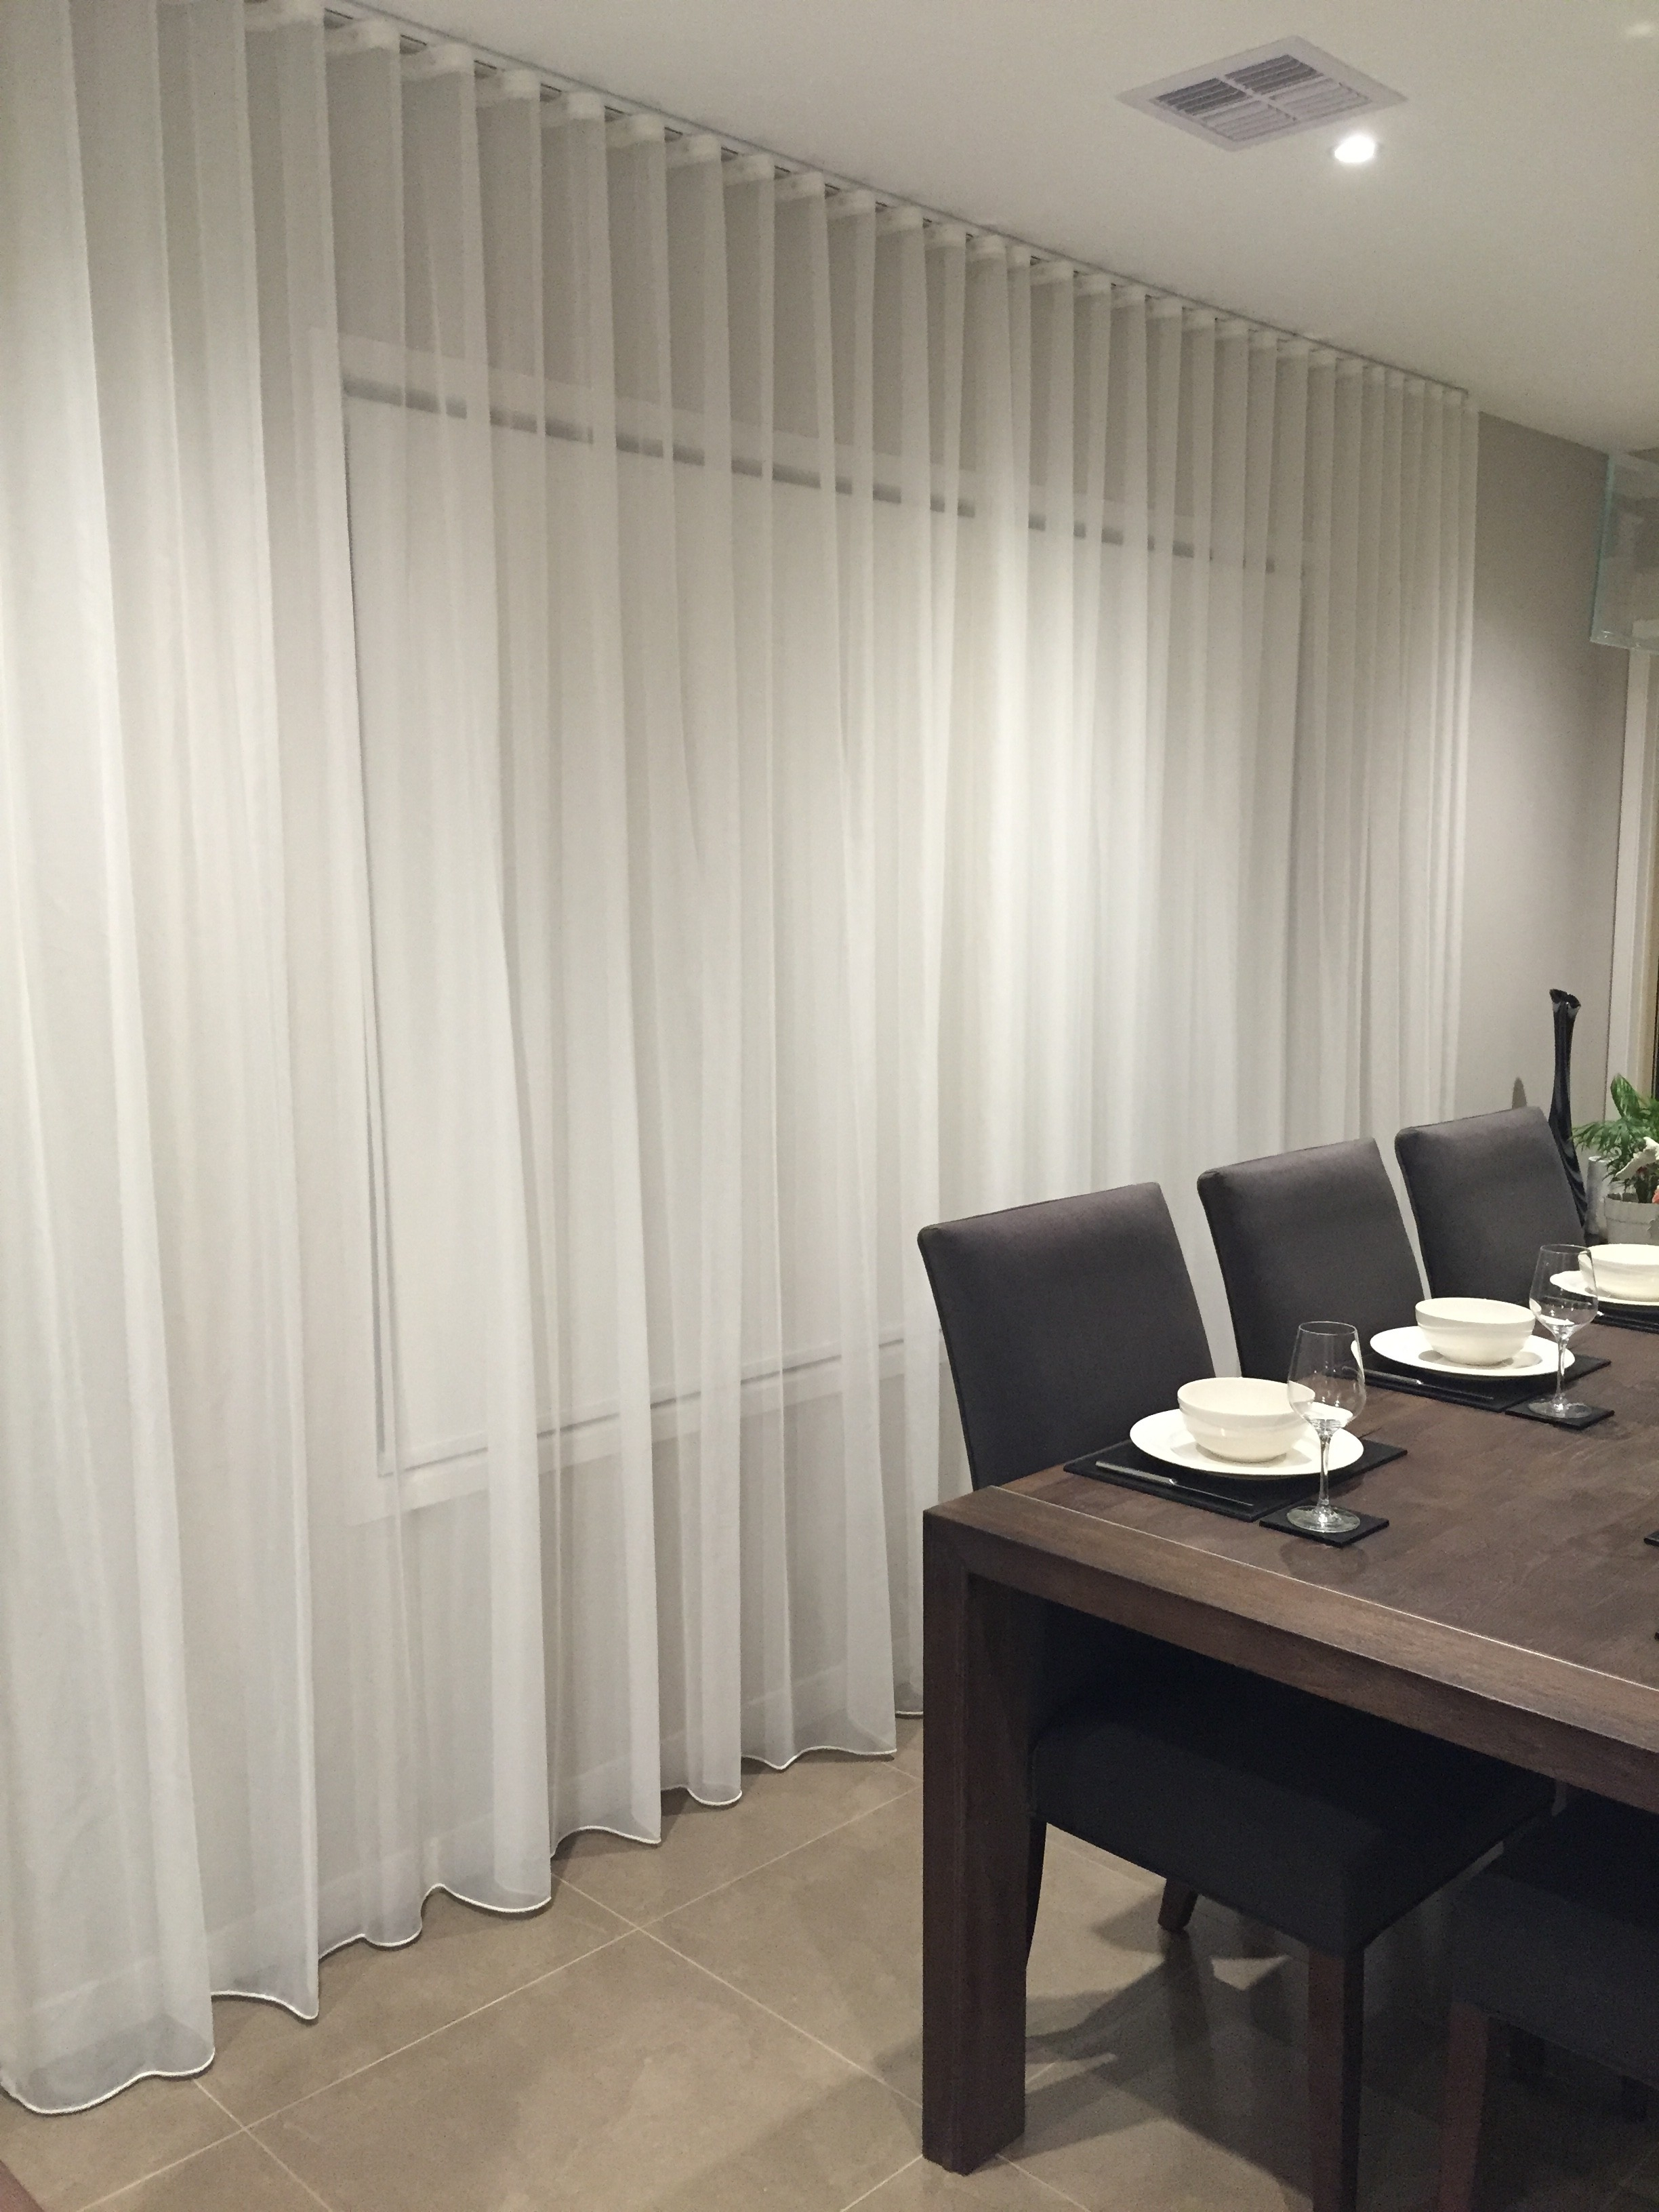 Amanda Rogers Roller Blinds Blockout In Vibe Cloud Sheer Intended For Sheer Roller Blind (Image 3 of 15)